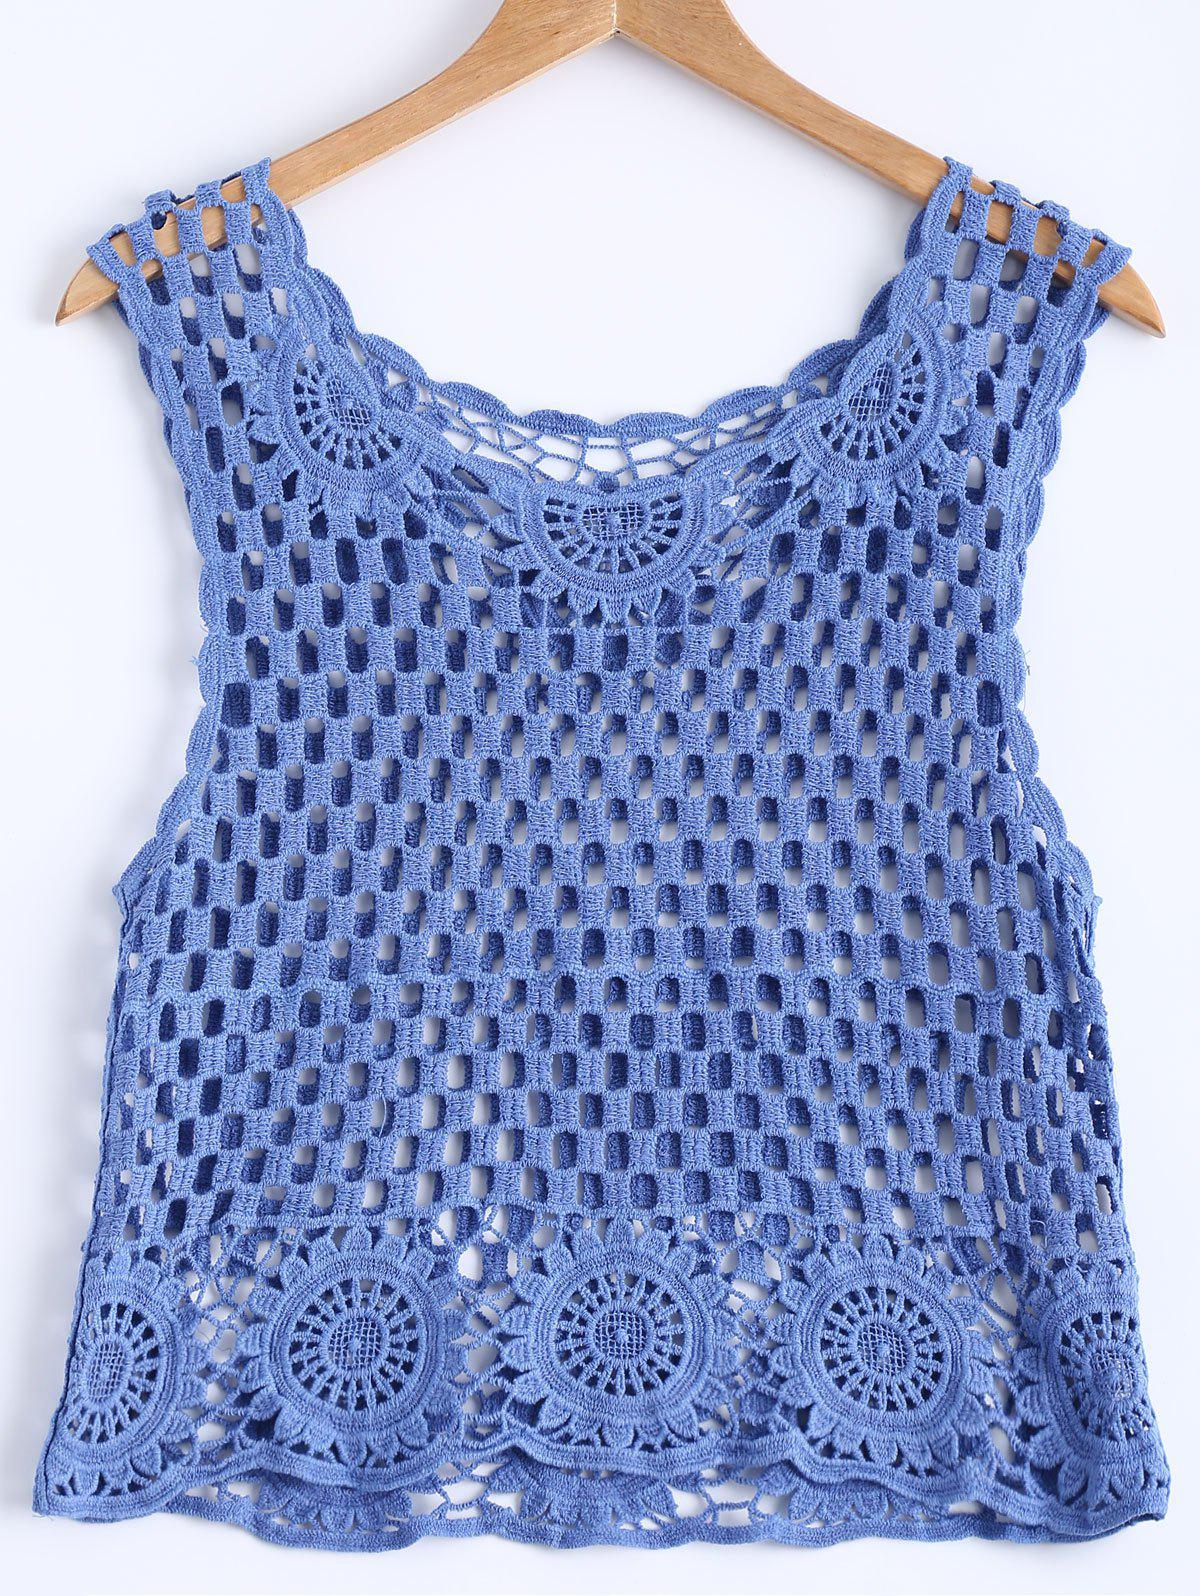 Stylish Women's Scoop Neck Crochet Openwork Tank Top